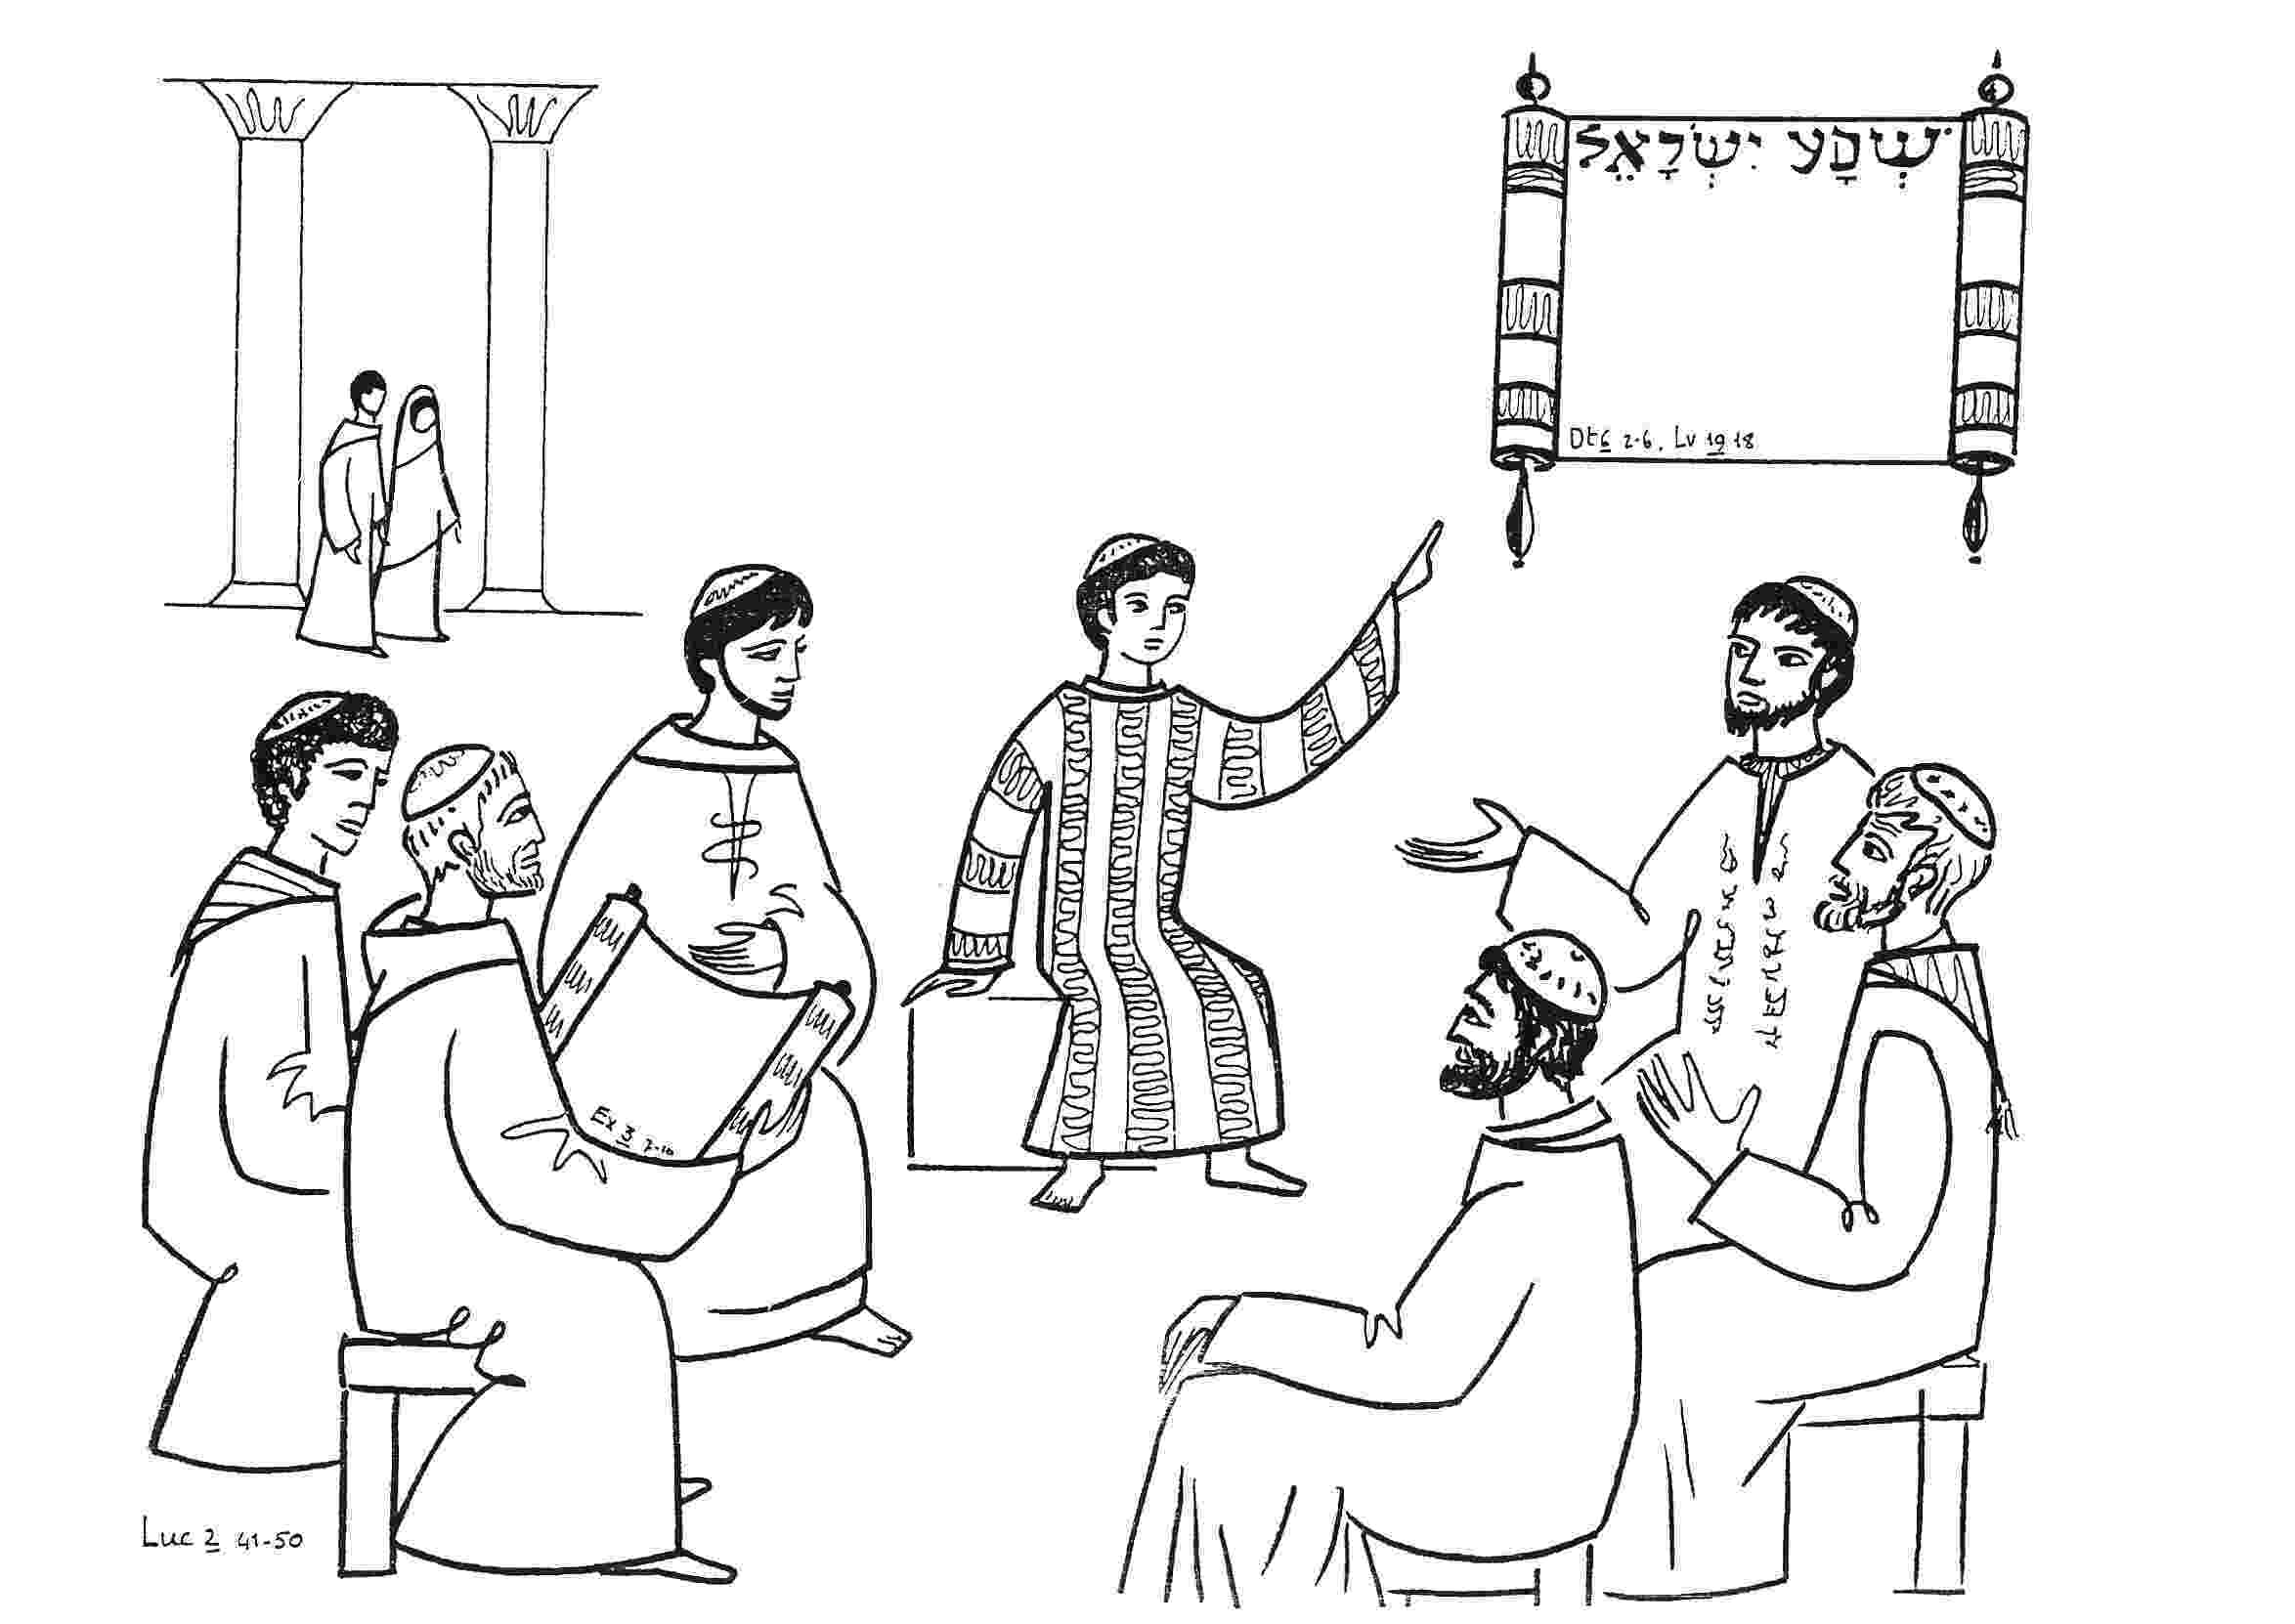 jesus in the temple coloring page jesus at the temple saint charbel39s mission sydney temple in page jesus coloring the